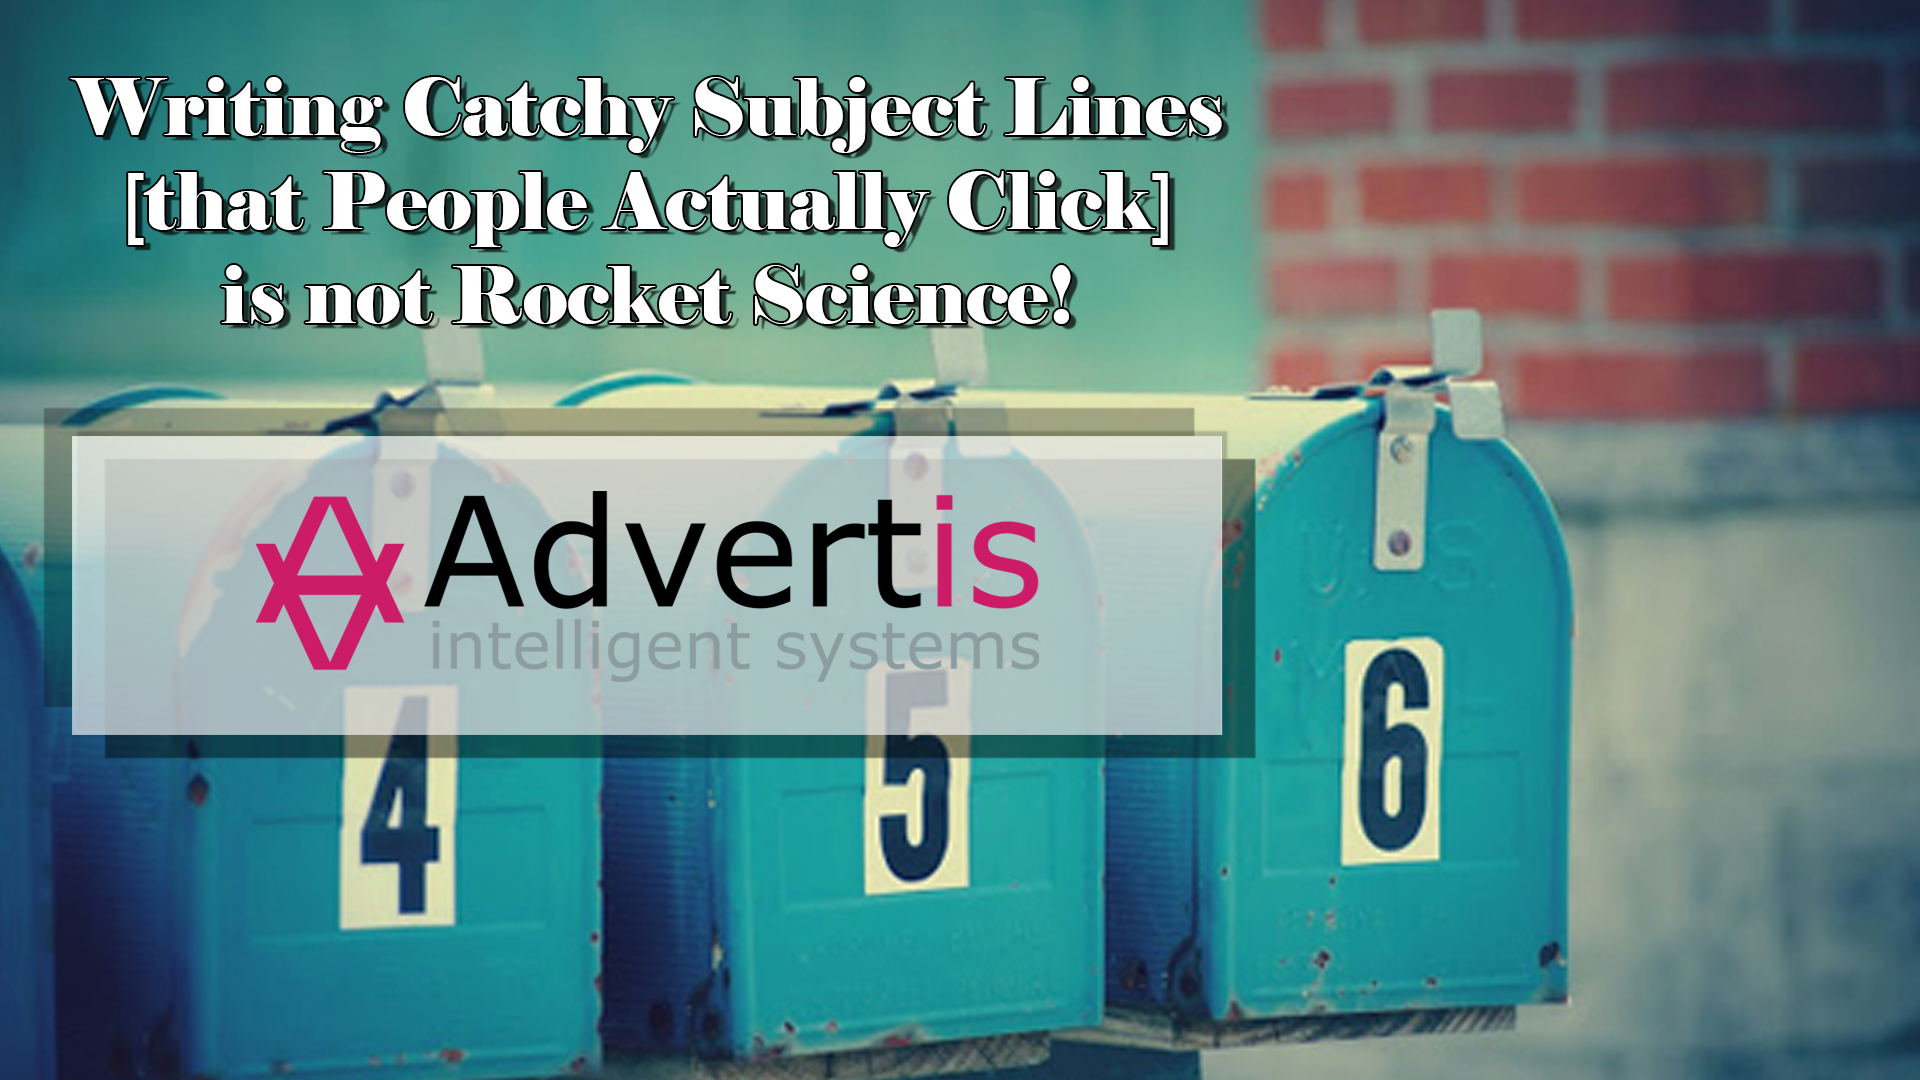 1 - Writing Catchy Subject Lines [that People Actually Click] is not Rocket Science!